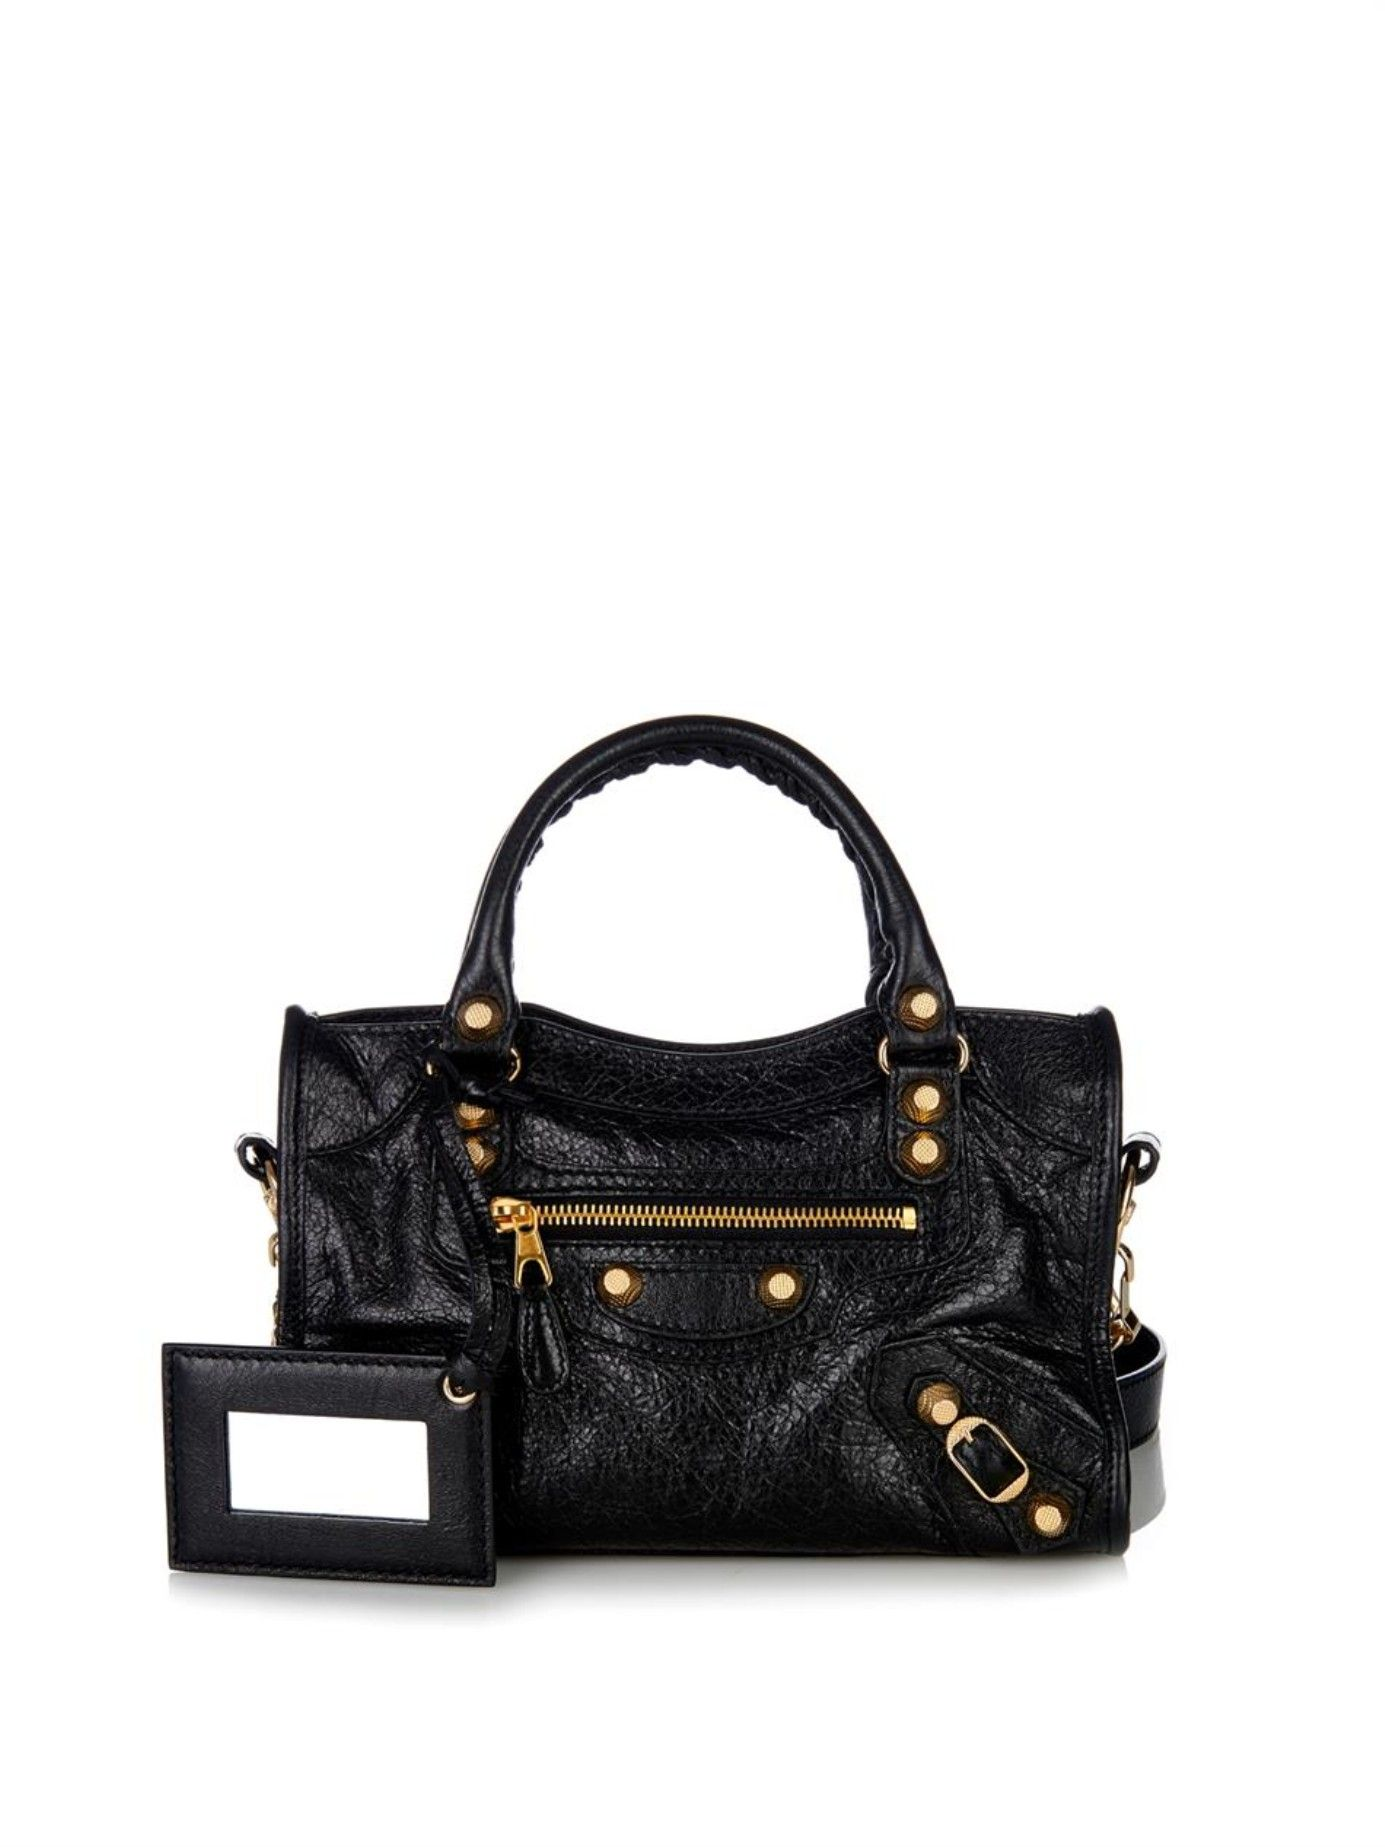 Bag Uk Giant Cross Matchesfashion Mini City Balenciaga com Body g884IHwq